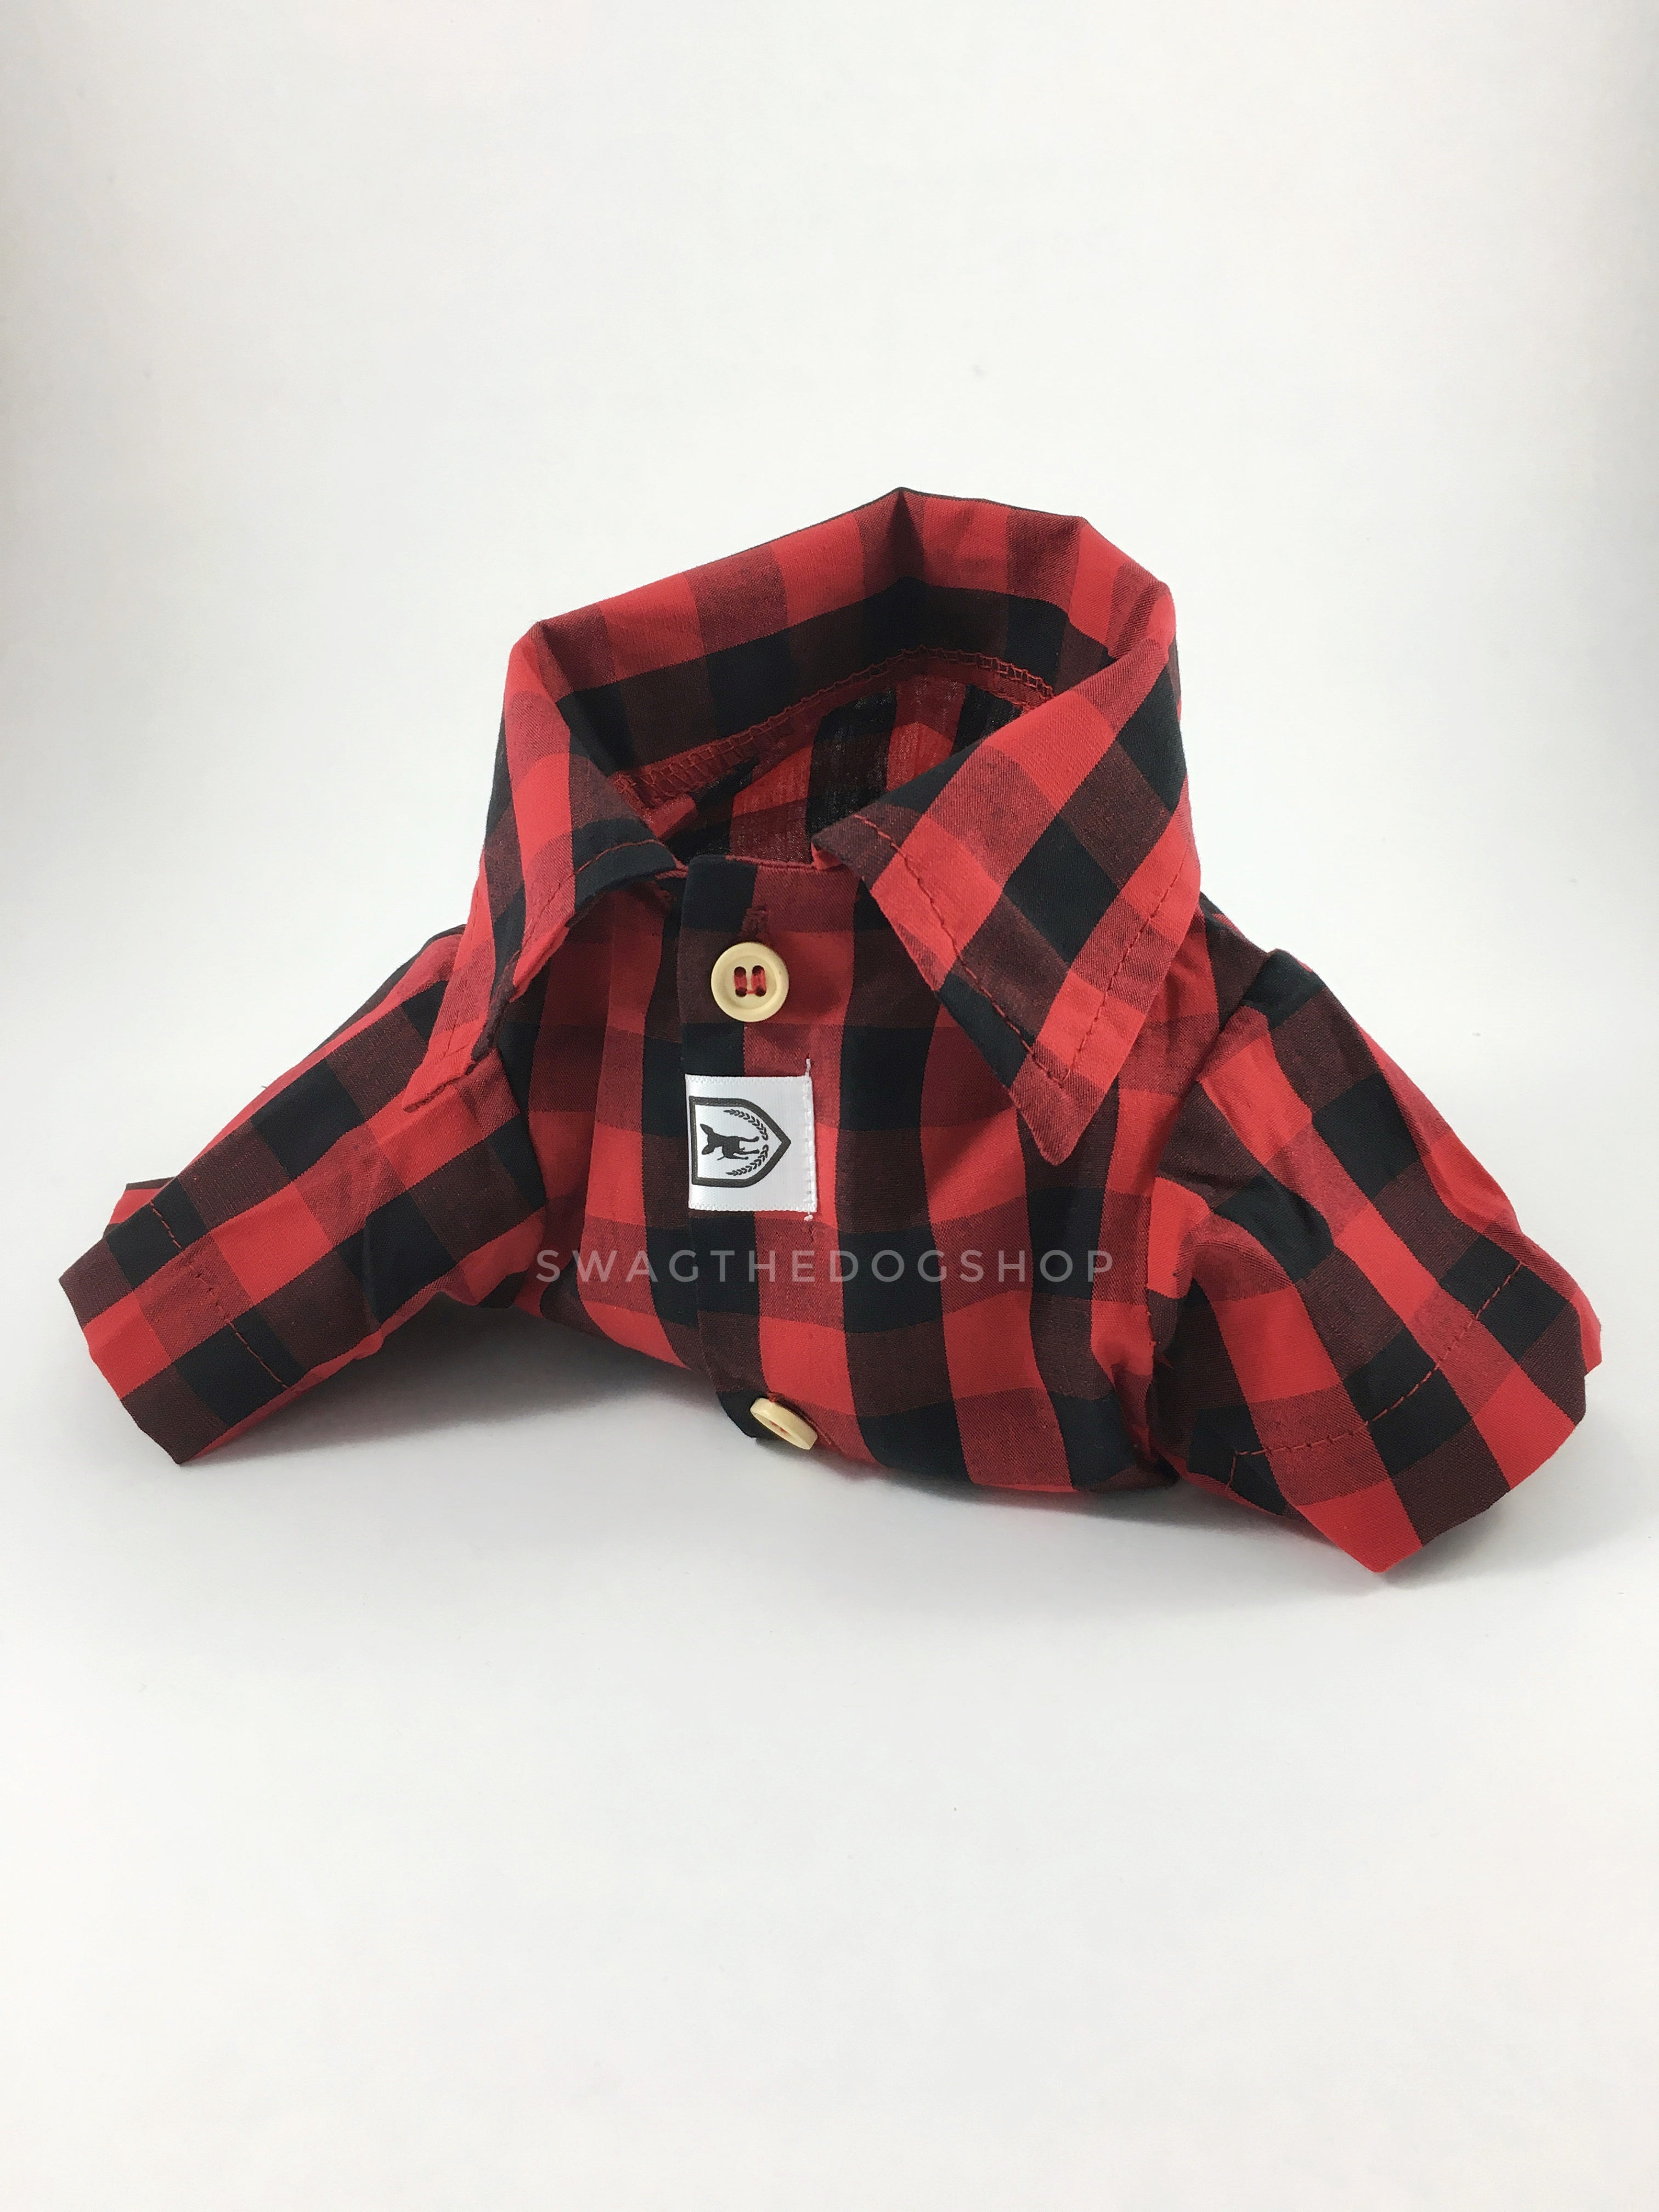 Kenora Summer Shirt - Product Upright Front View. Black and Red Gingham Shirt